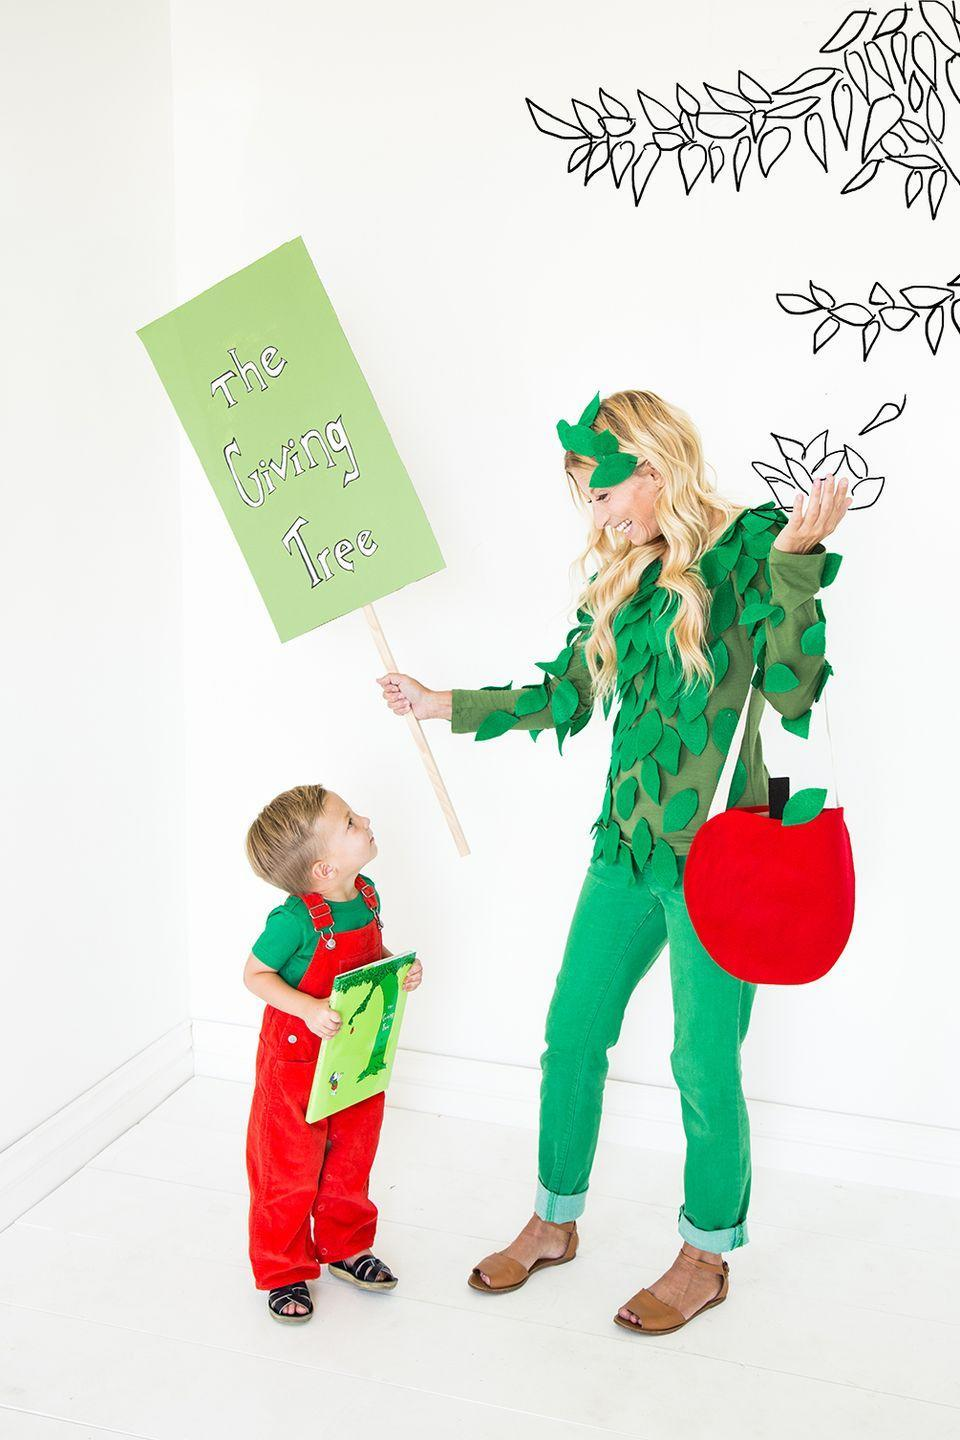 """<p>Halloween is sweeter with your little one this year. Celebrate <br>as <em><a href=""""https://thehousethatlarsbuilt.com/2015/10/the-giving-tree-parent-and-child-costumes.html"""" rel=""""nofollow noopener"""" target=""""_blank"""" data-ylk=""""slk:The"""" class=""""link rapid-noclick-resp"""">The</a> Giving Tree</em> with a Shel Silverstein-inspired costume.<br></p>"""